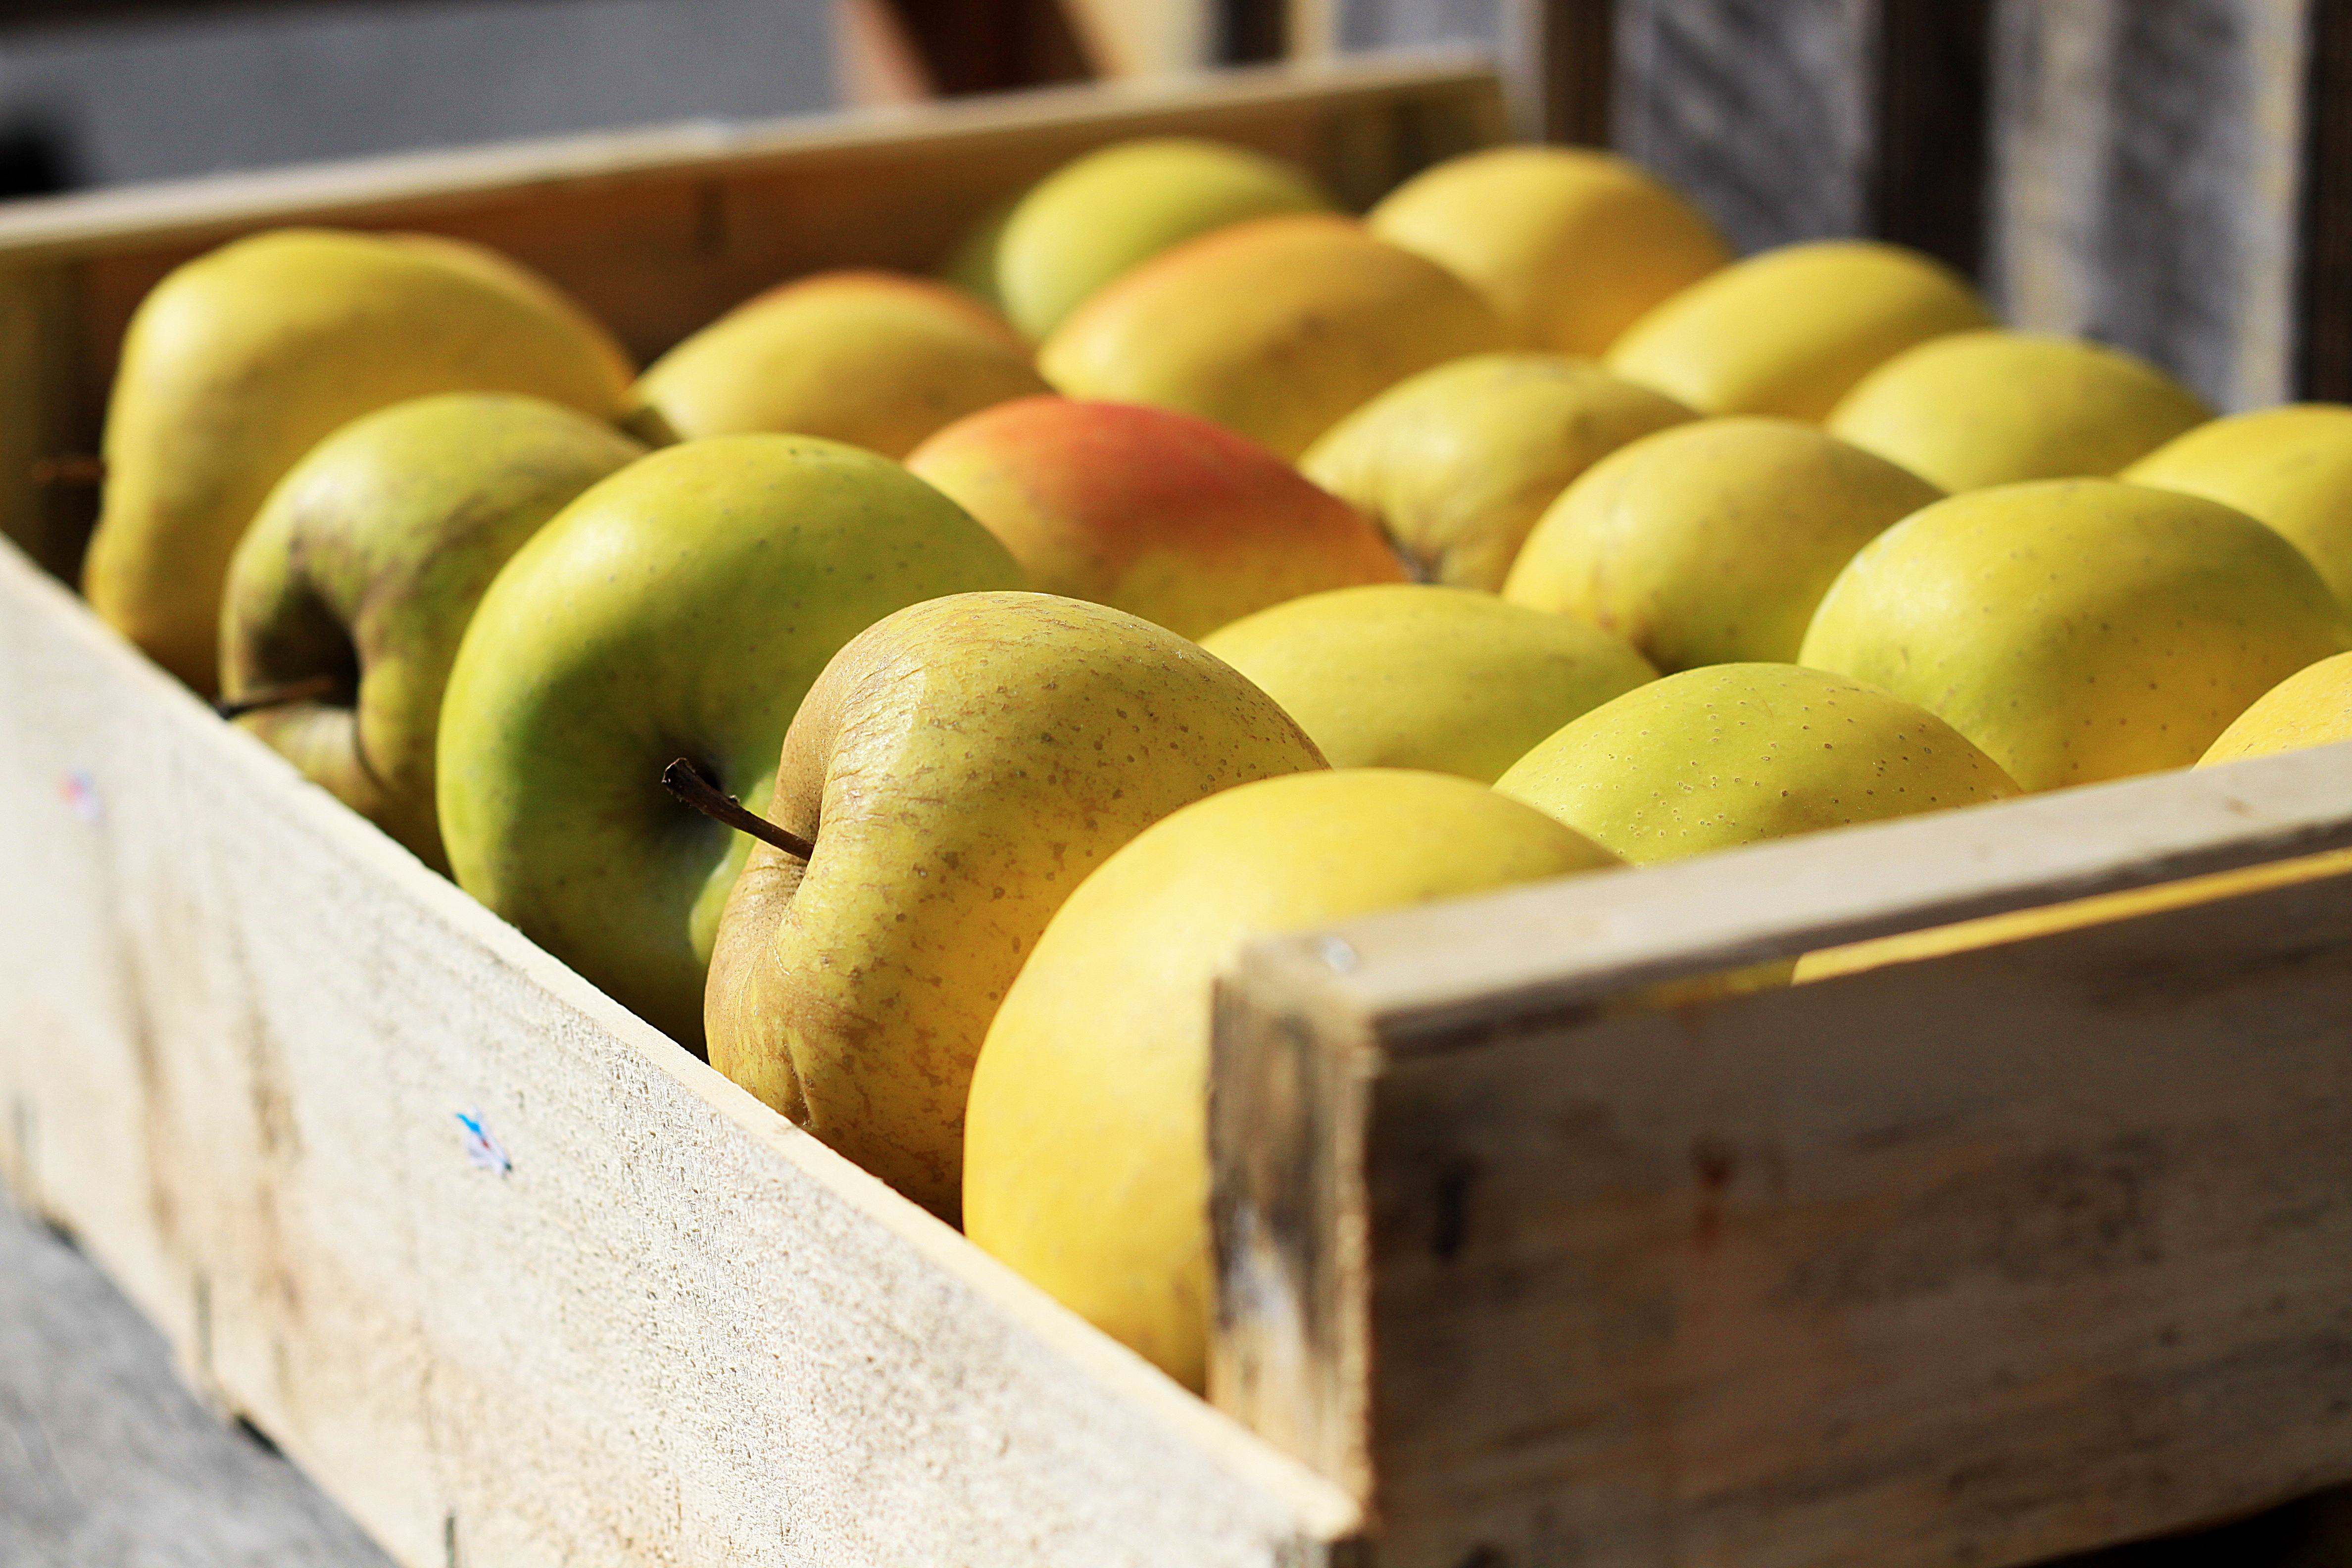 Close up of golden delicious apples in box